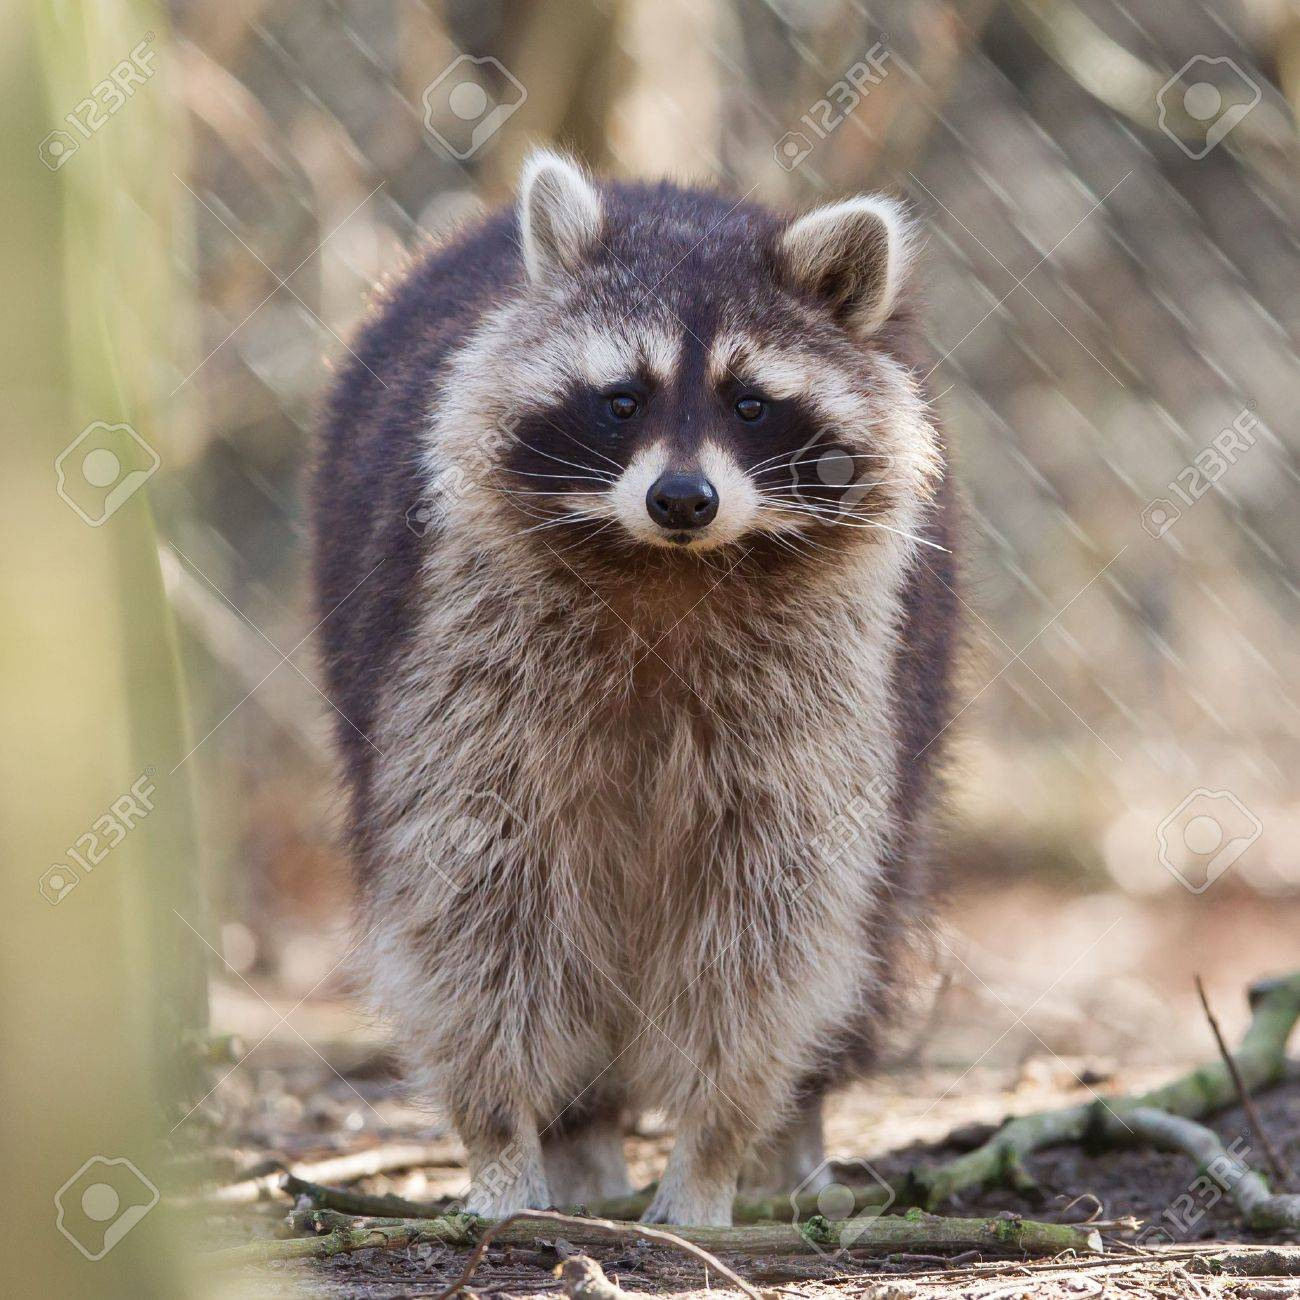 Curious racoon in captivity is staring into the lens Stock Photo - 18296033